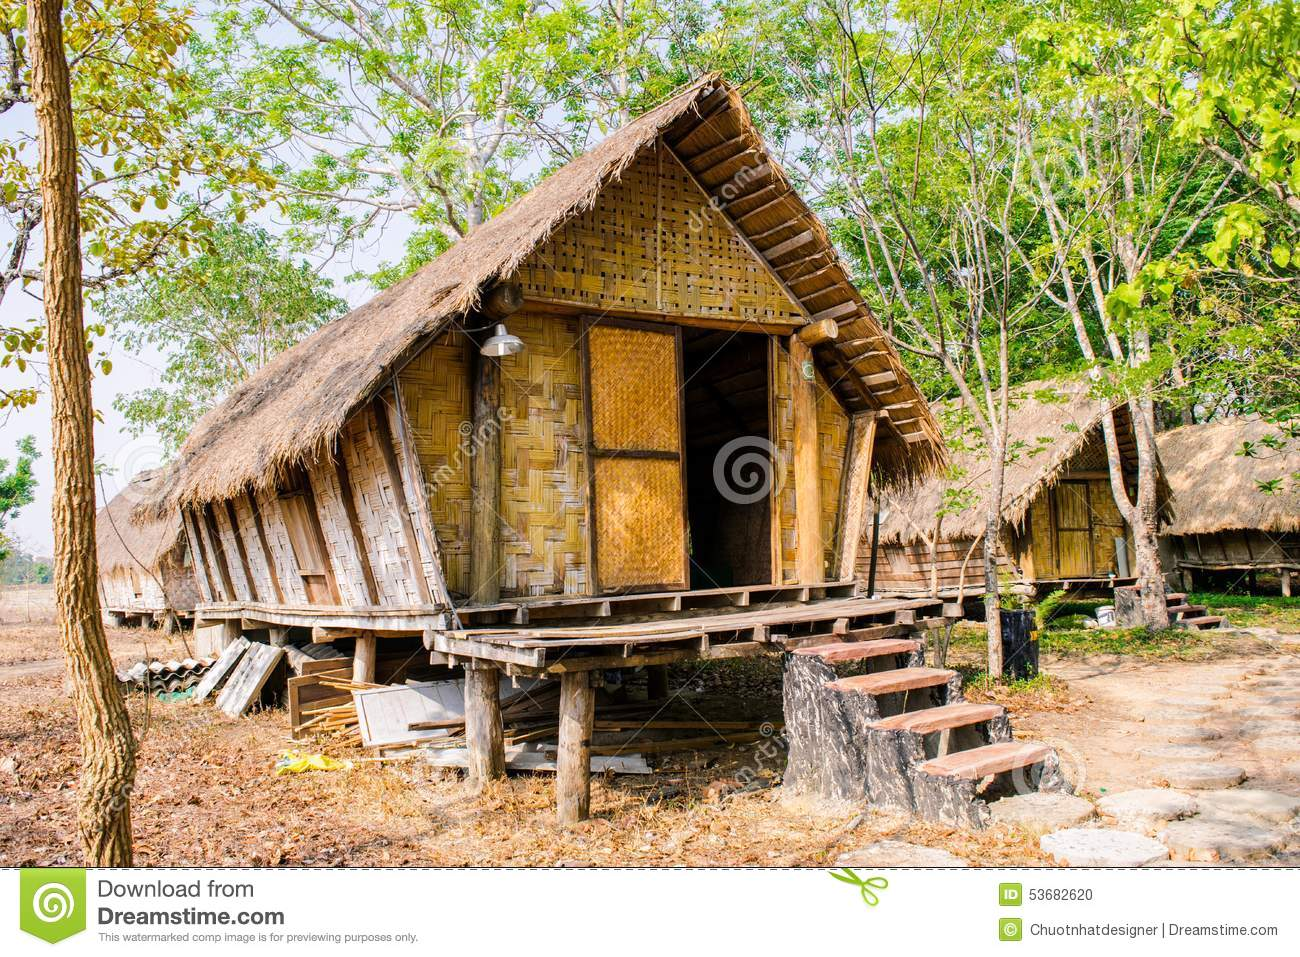 House Of People At Daklak Province, Vietnam. Houses Usually Make.